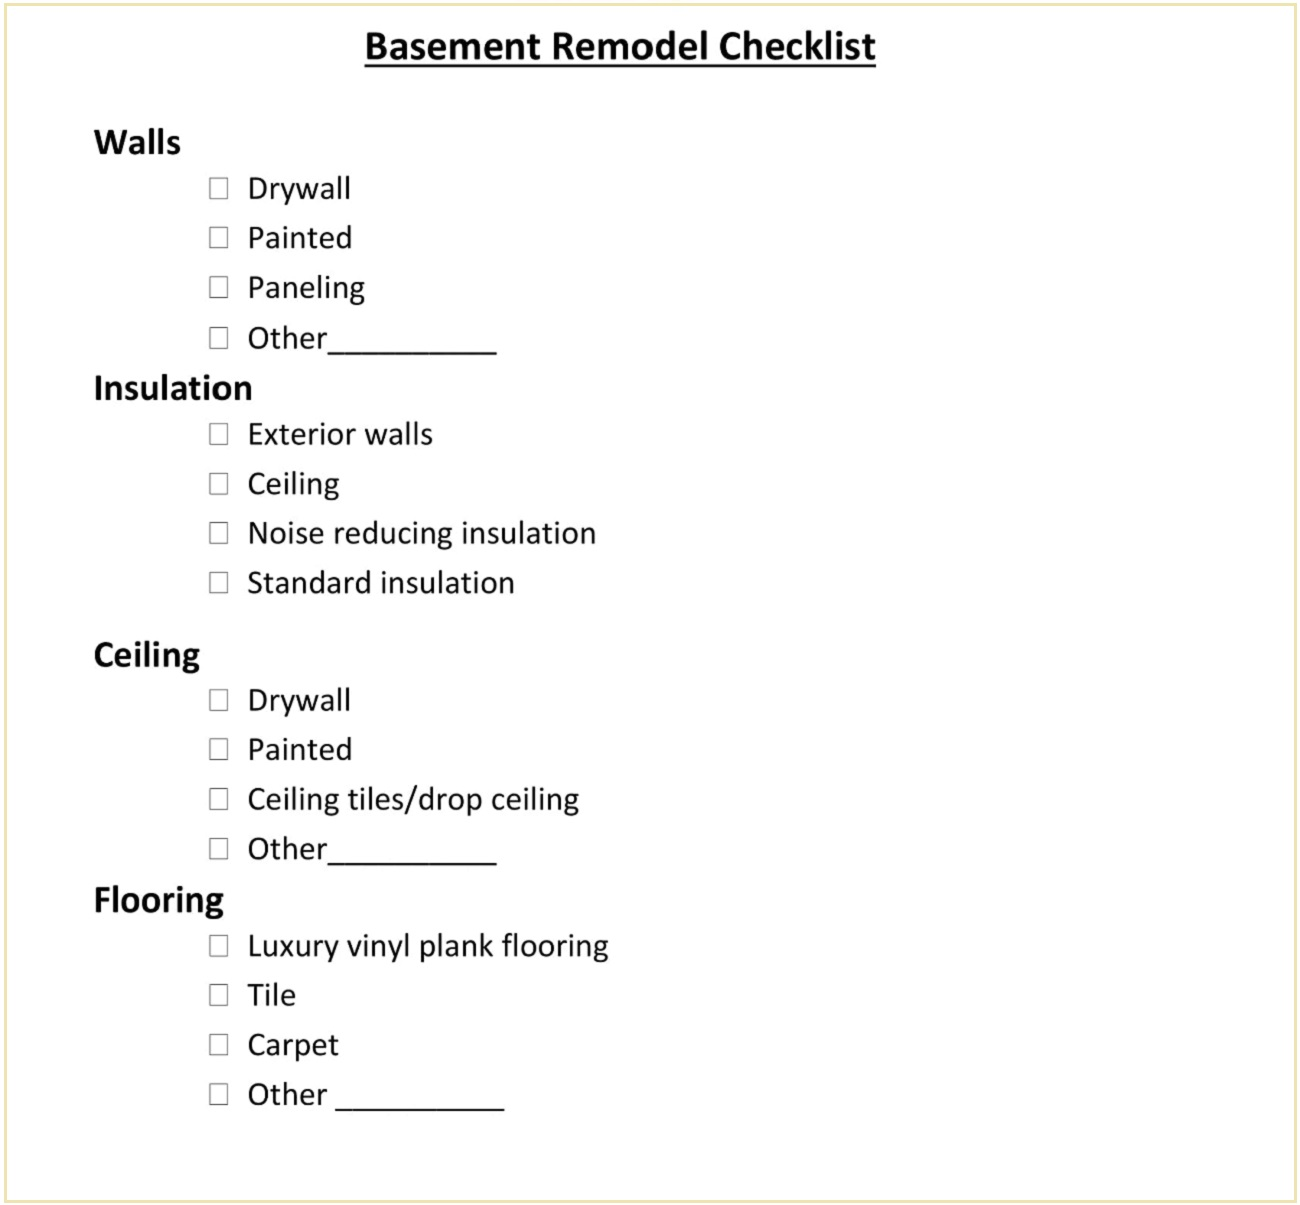 Basement Remodeling Project Checklist Template PDF